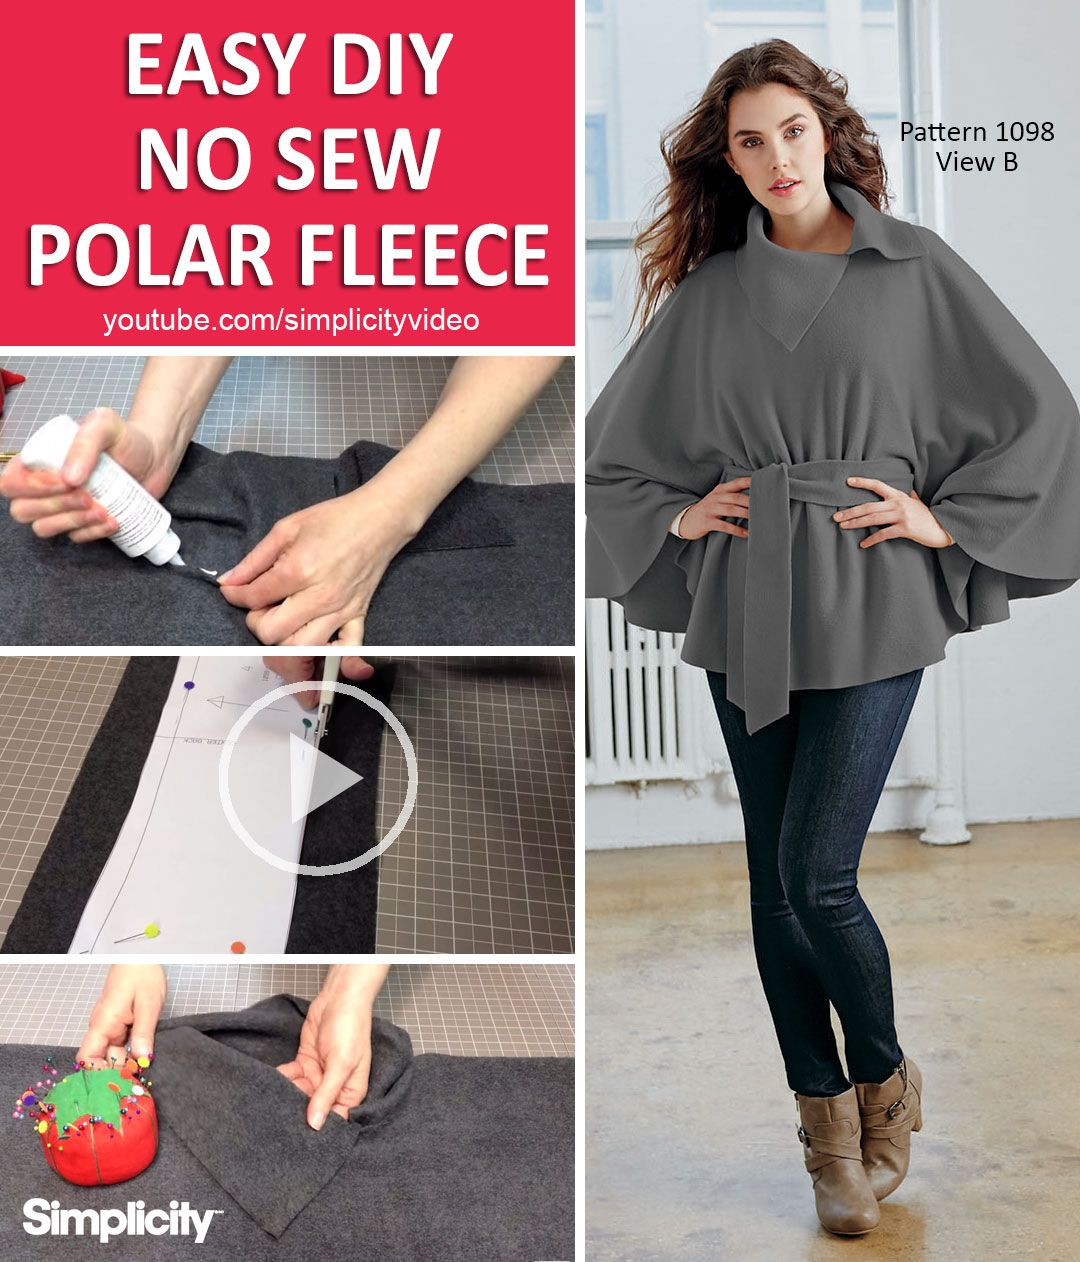 Make This Warm Polar Fleece Wrap In Just 5 Easy Steps In Under An Hour Using Simplicity Pattern 1098 No Sewing Sewing Fleece Fleece Poncho Refashion Clothes